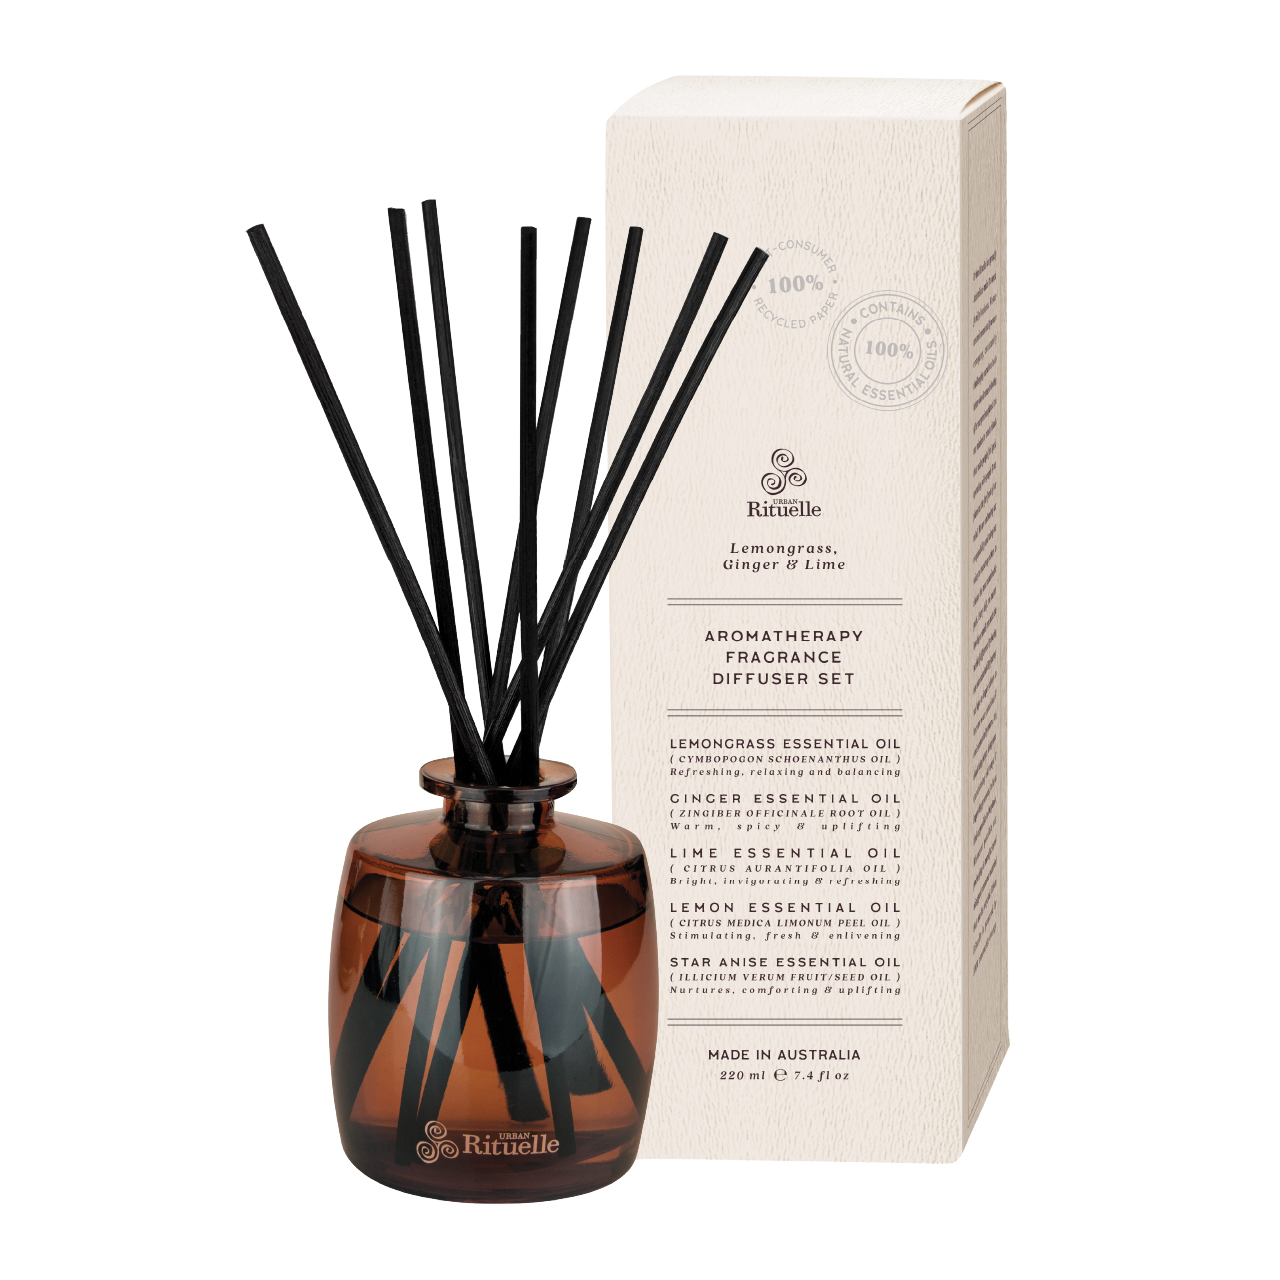 Natural Remedy - Aromatherapy Fragrance Diffuser Set